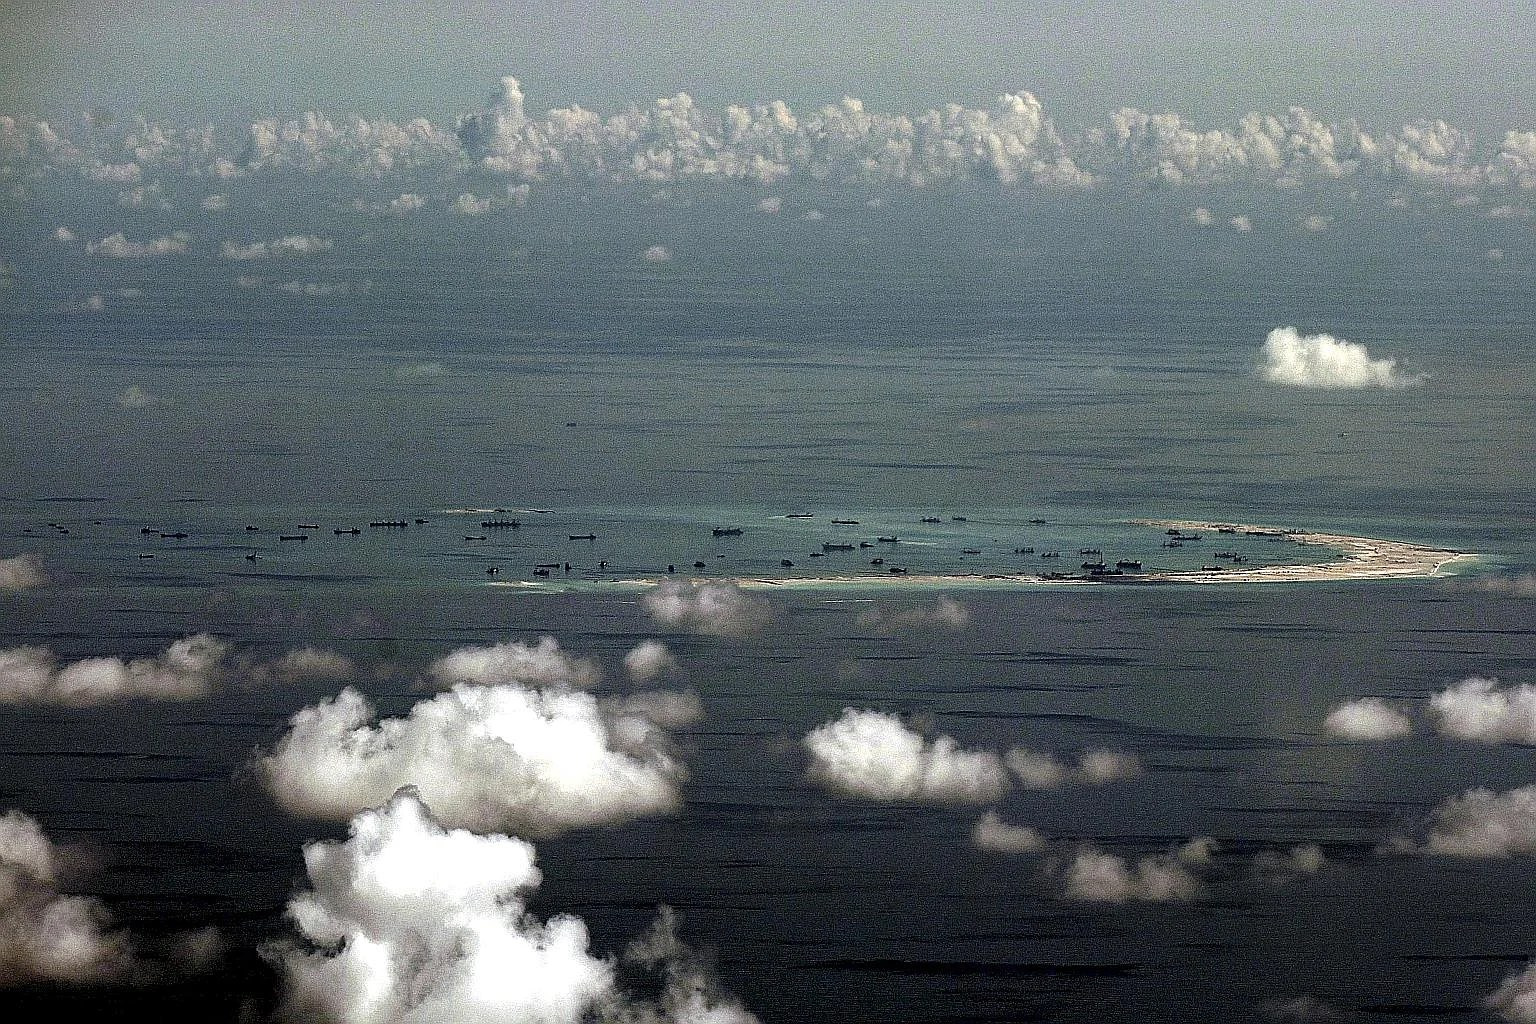 An aerial photo showing China's alleged land reclamation on Mischief Reef in the South China Sea, west of Palawan in the Philippines. Several